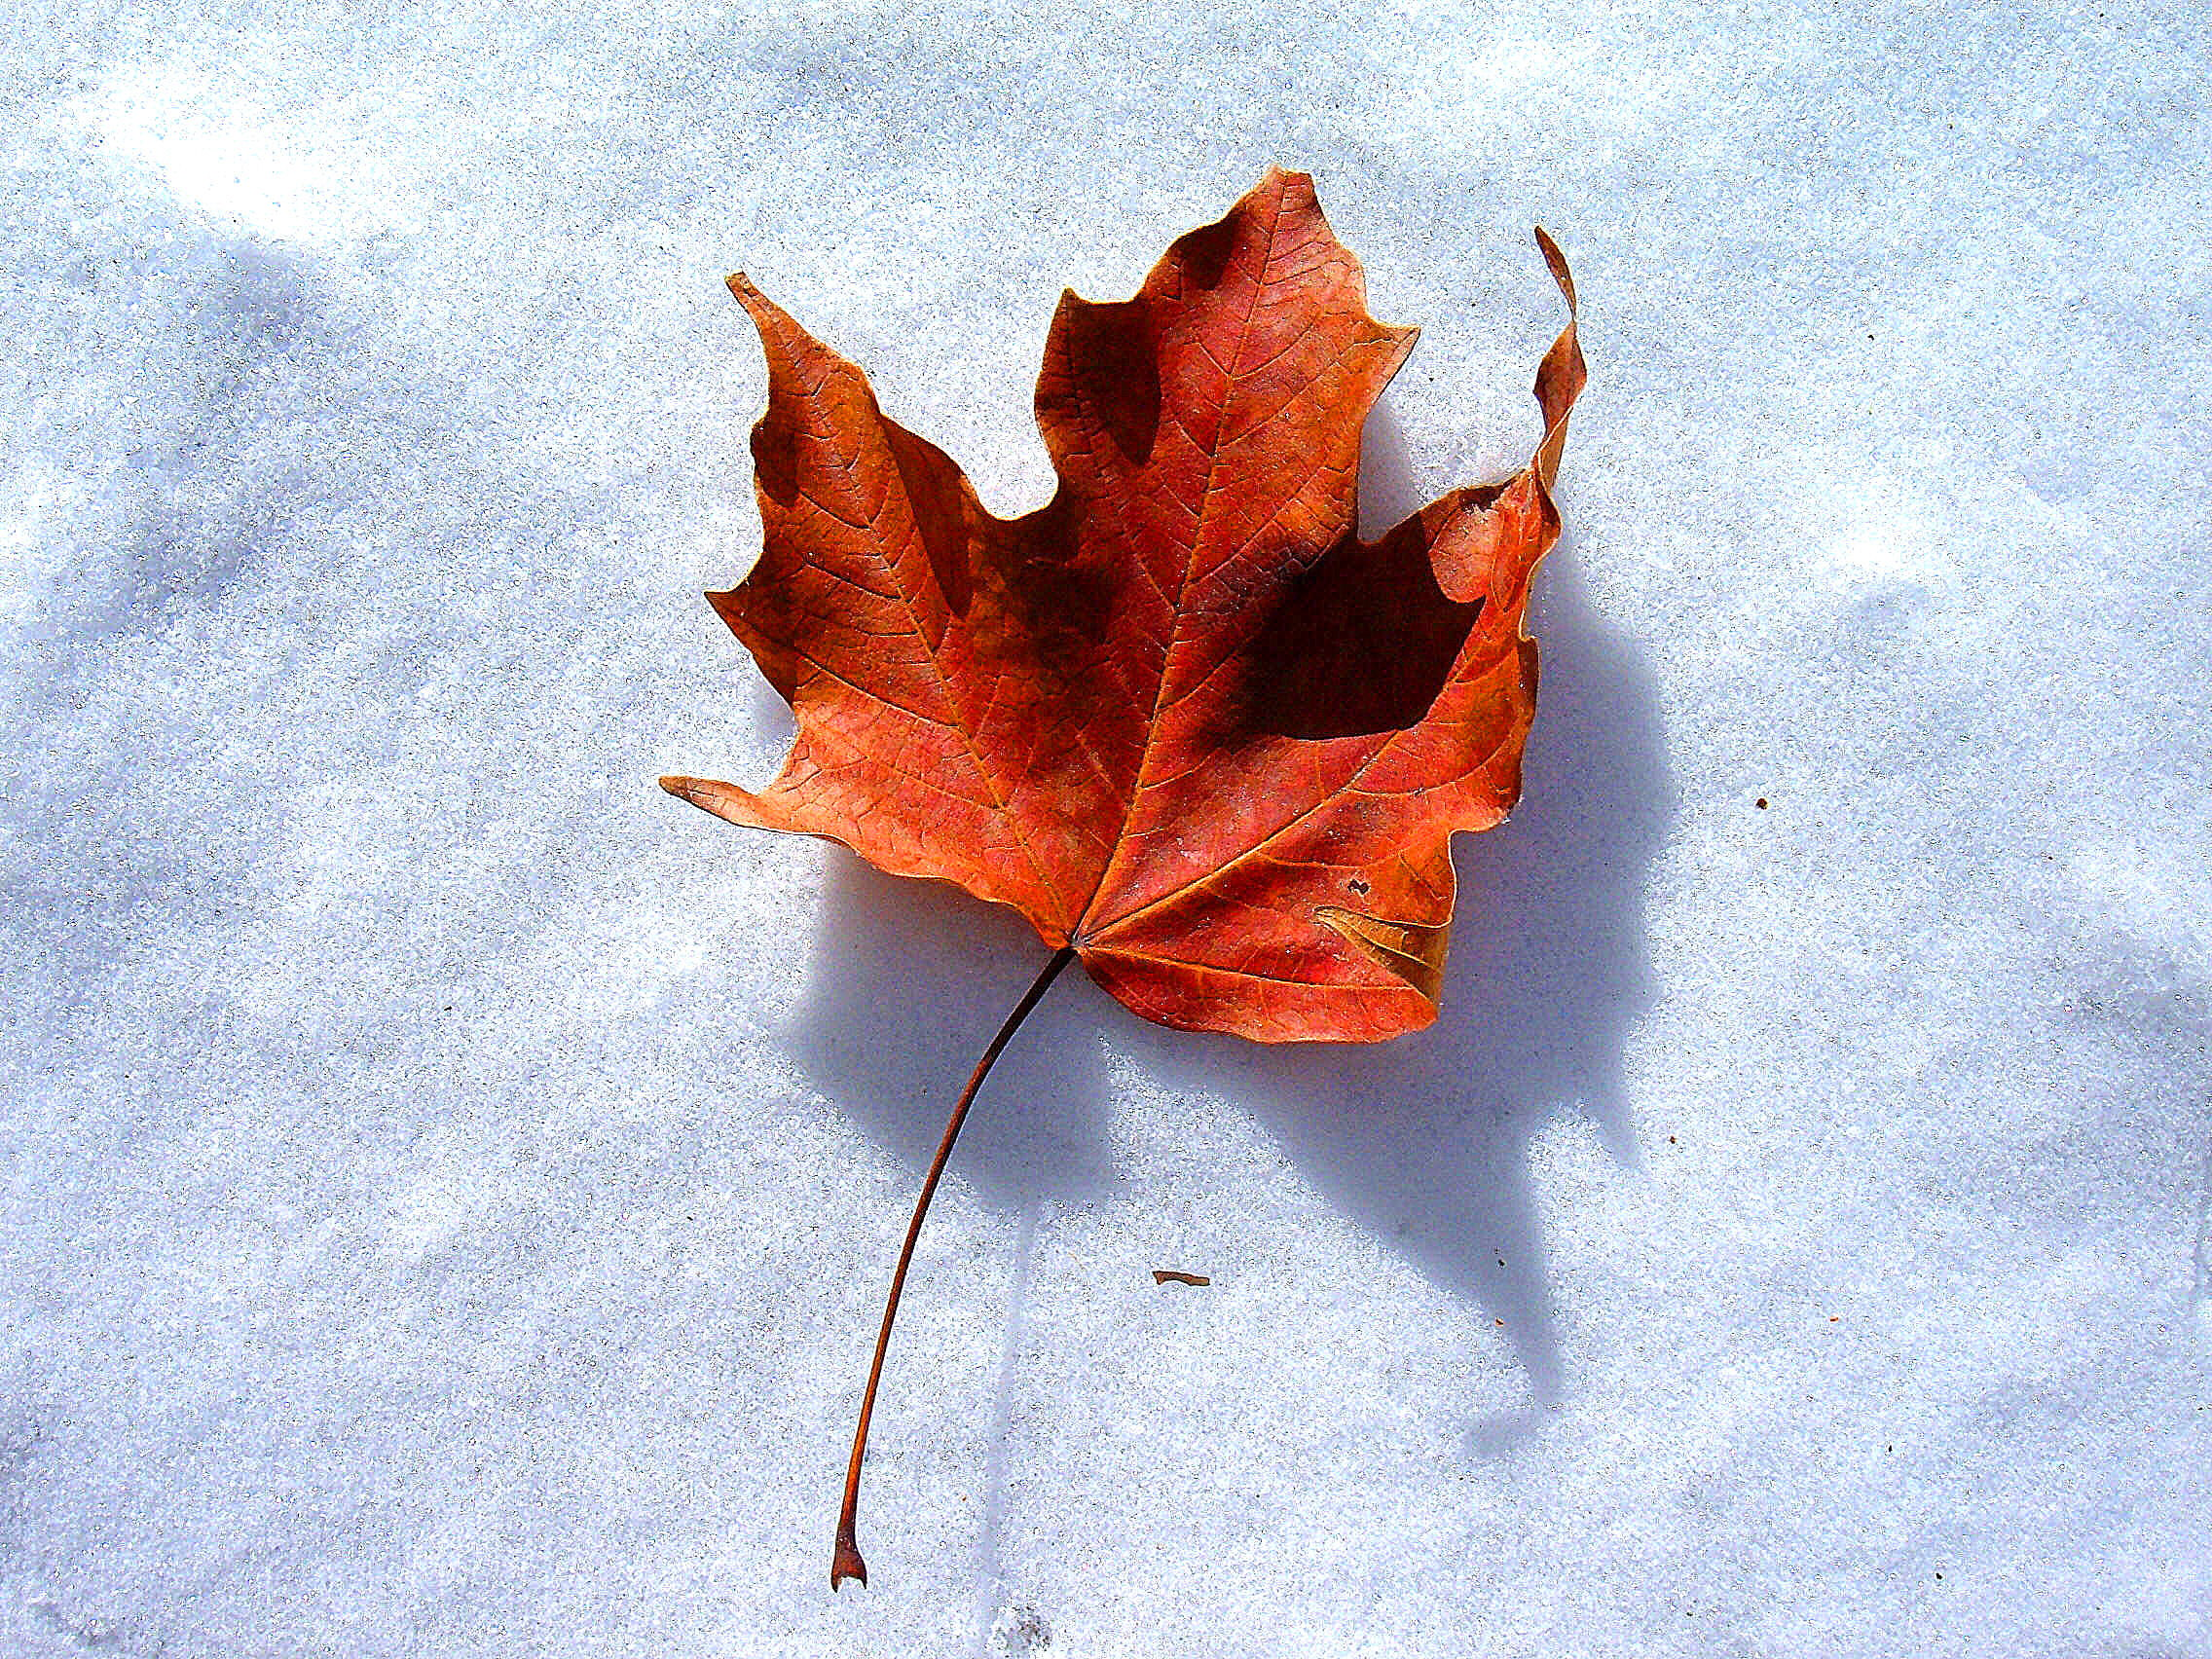 Snow Leaf-The End of Fall | photo page - everystockphoto